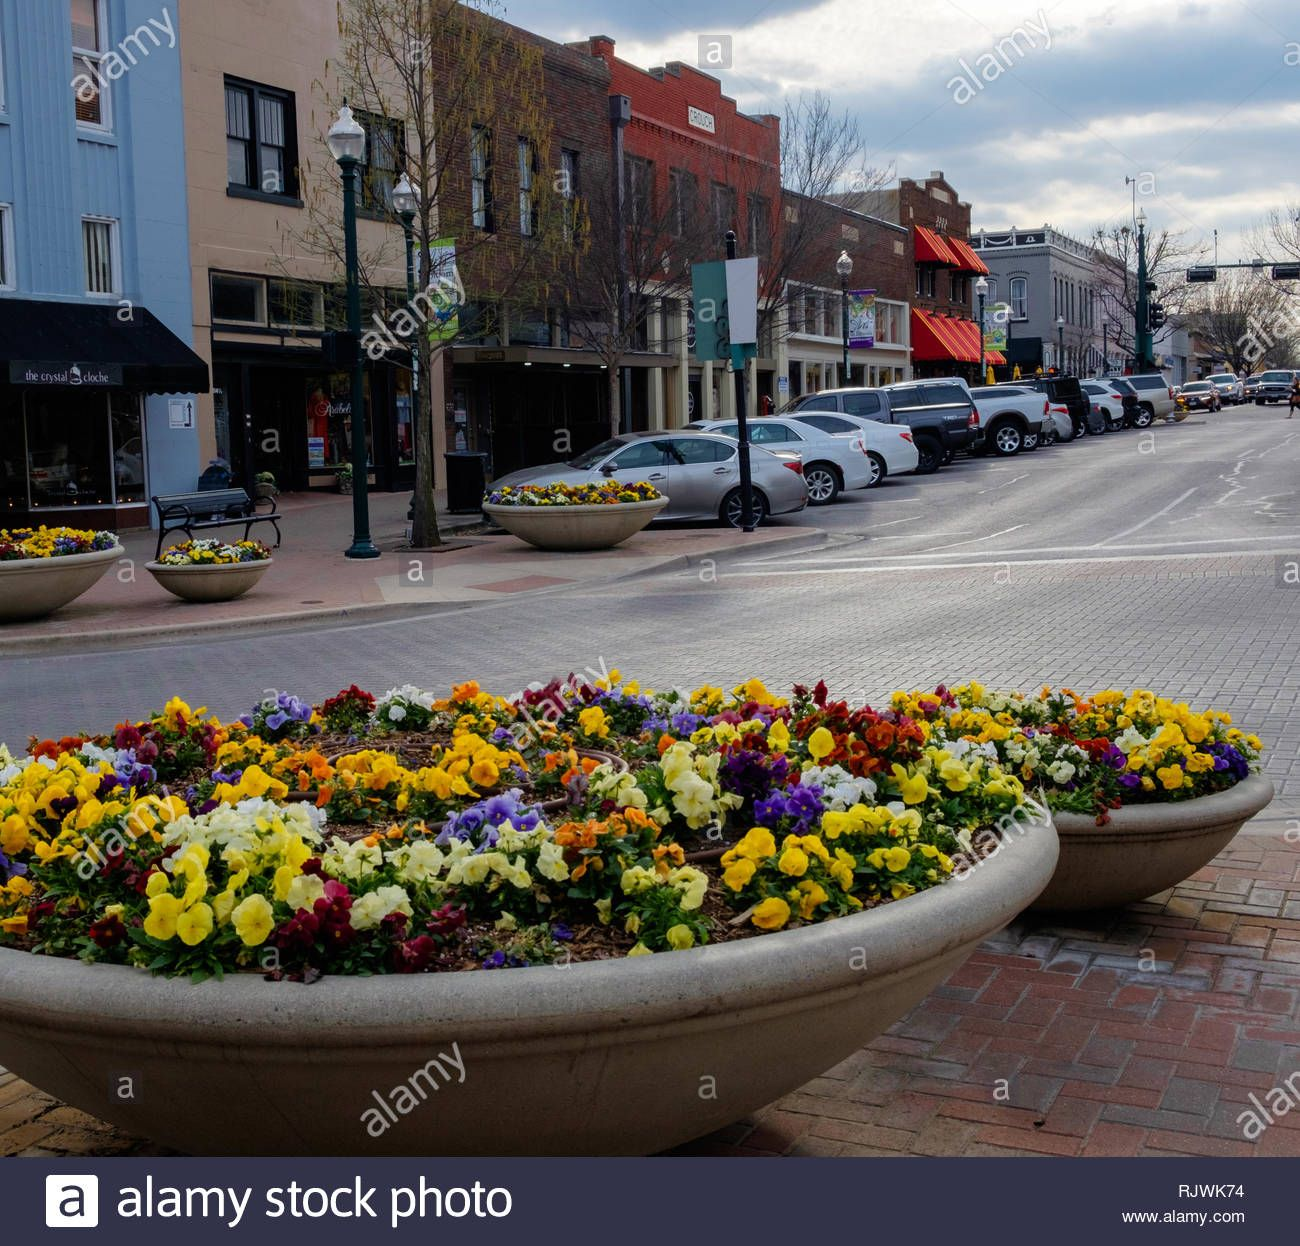 Colorful flowers in round cement planters decorate Main